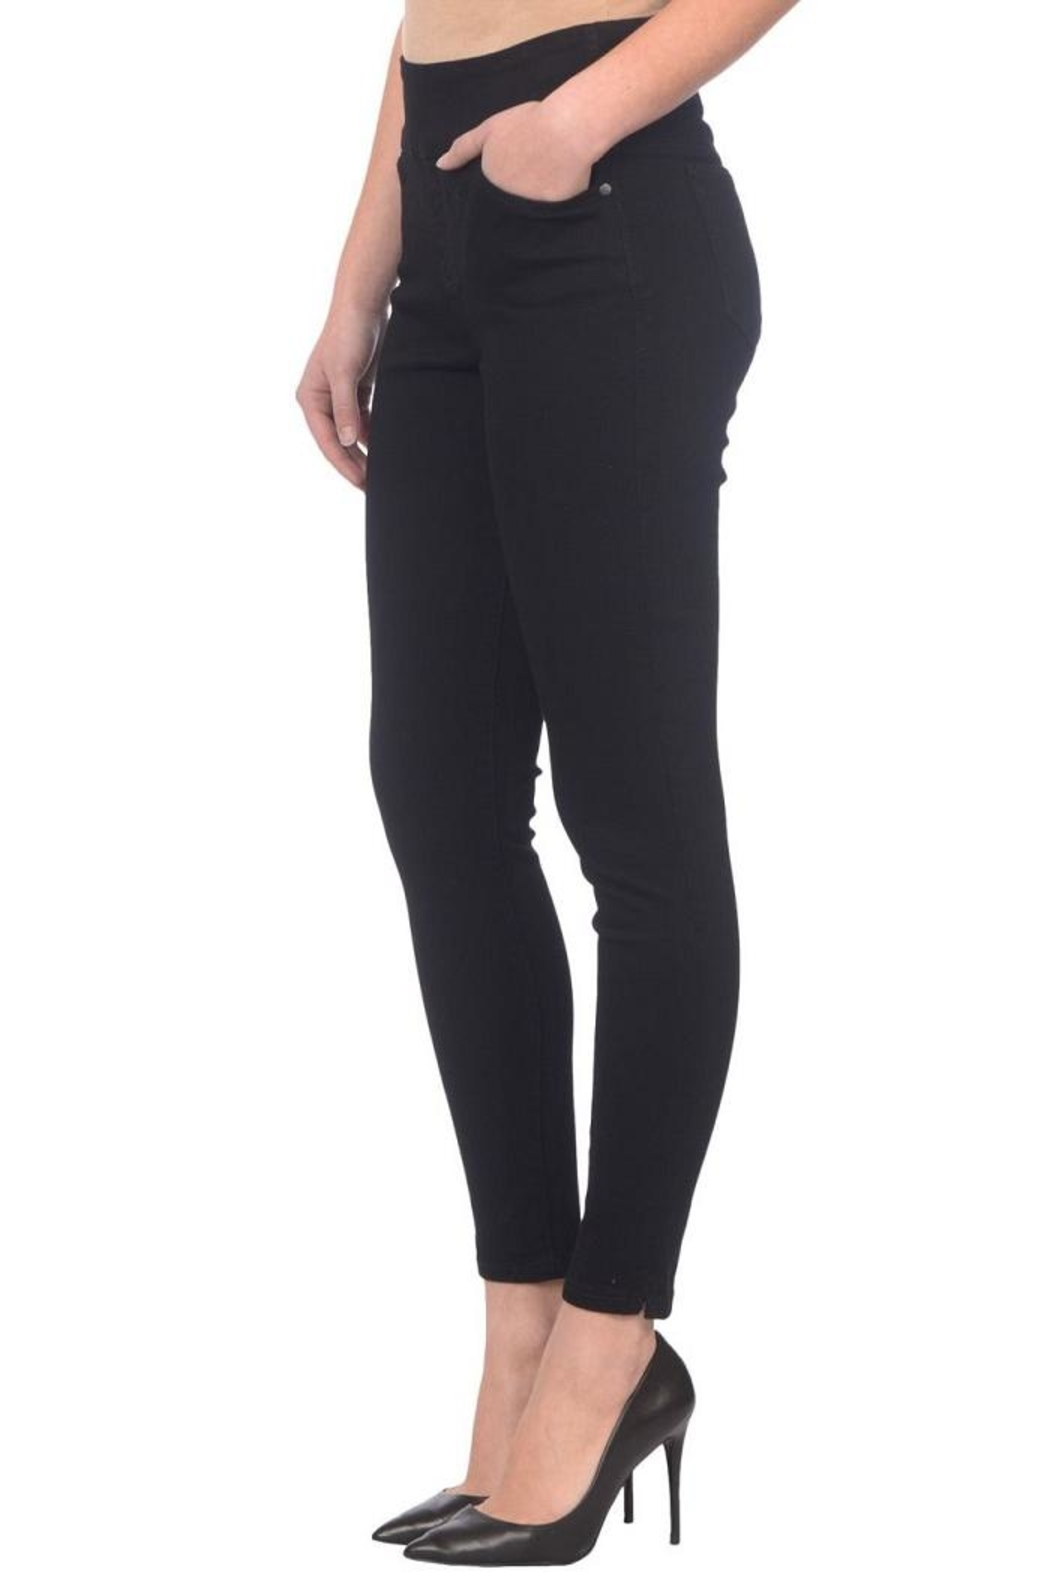 Lola Jeans Rachel Pull-On Jeans - Side Cropped Image